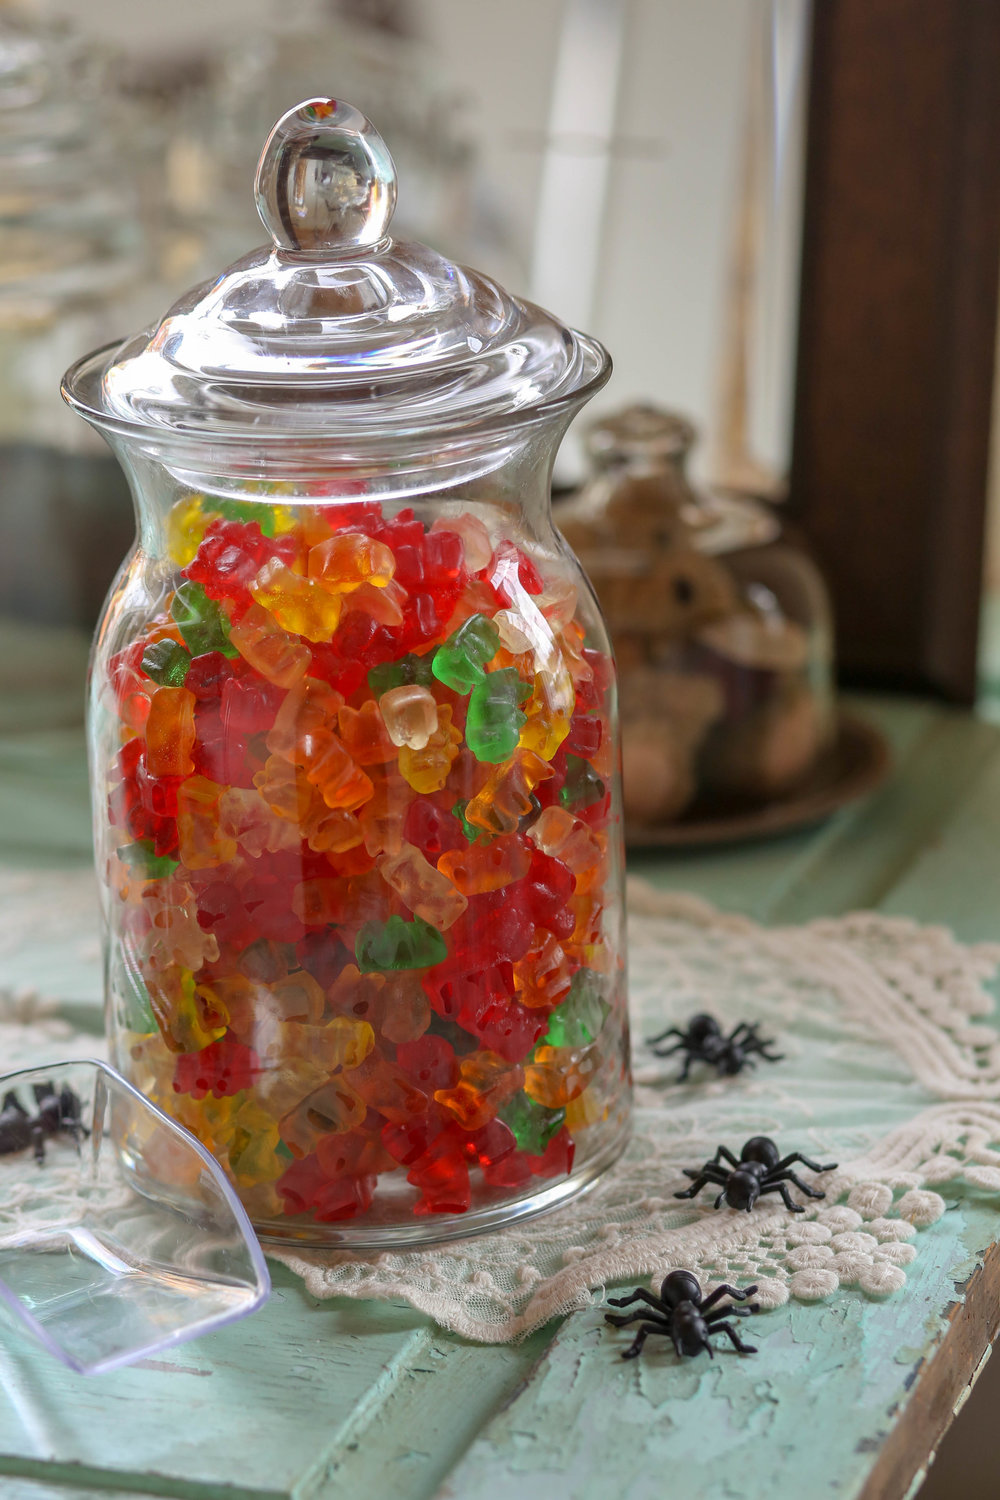 Candy bar jars available